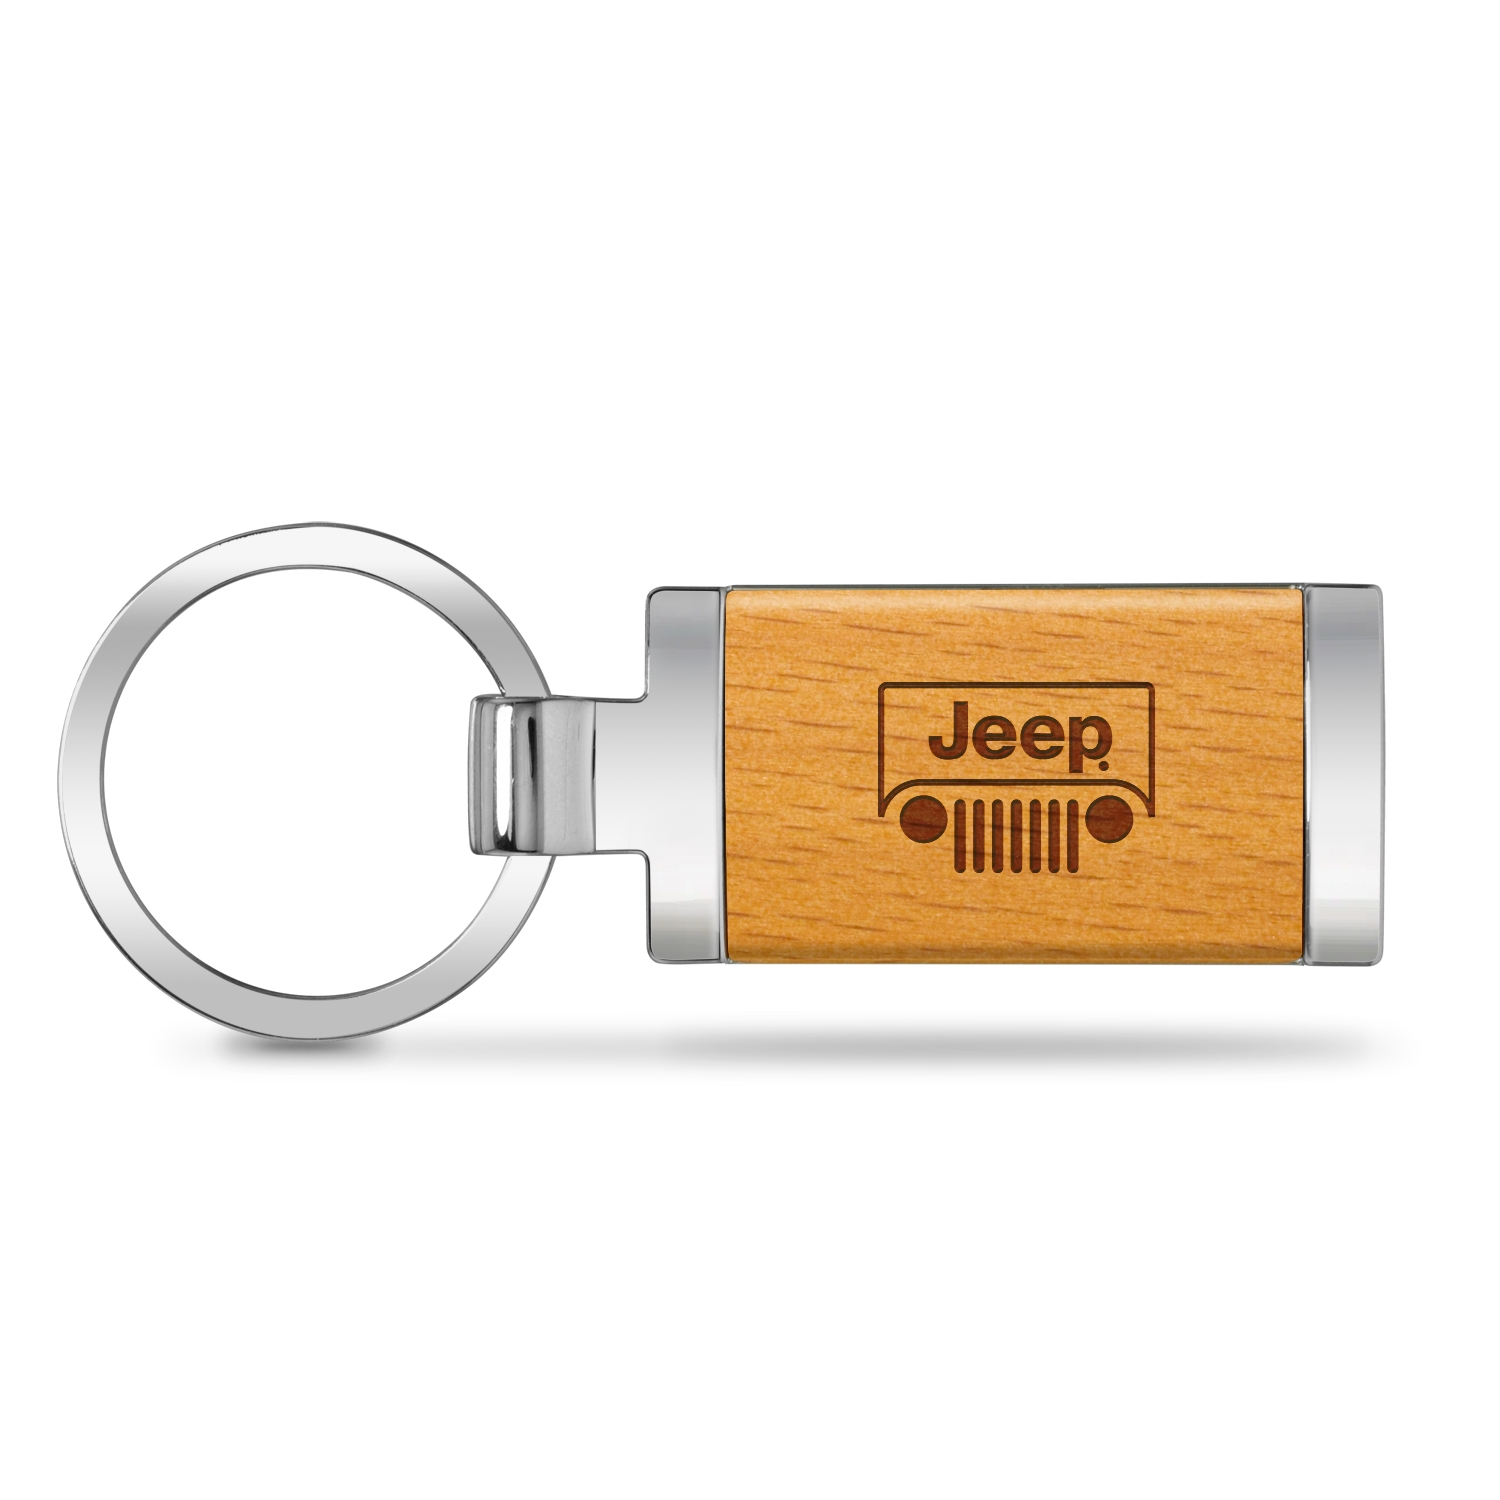 Jeep Grill Laser Engraved Maple Wood Chrome Metal Trim Key Chain